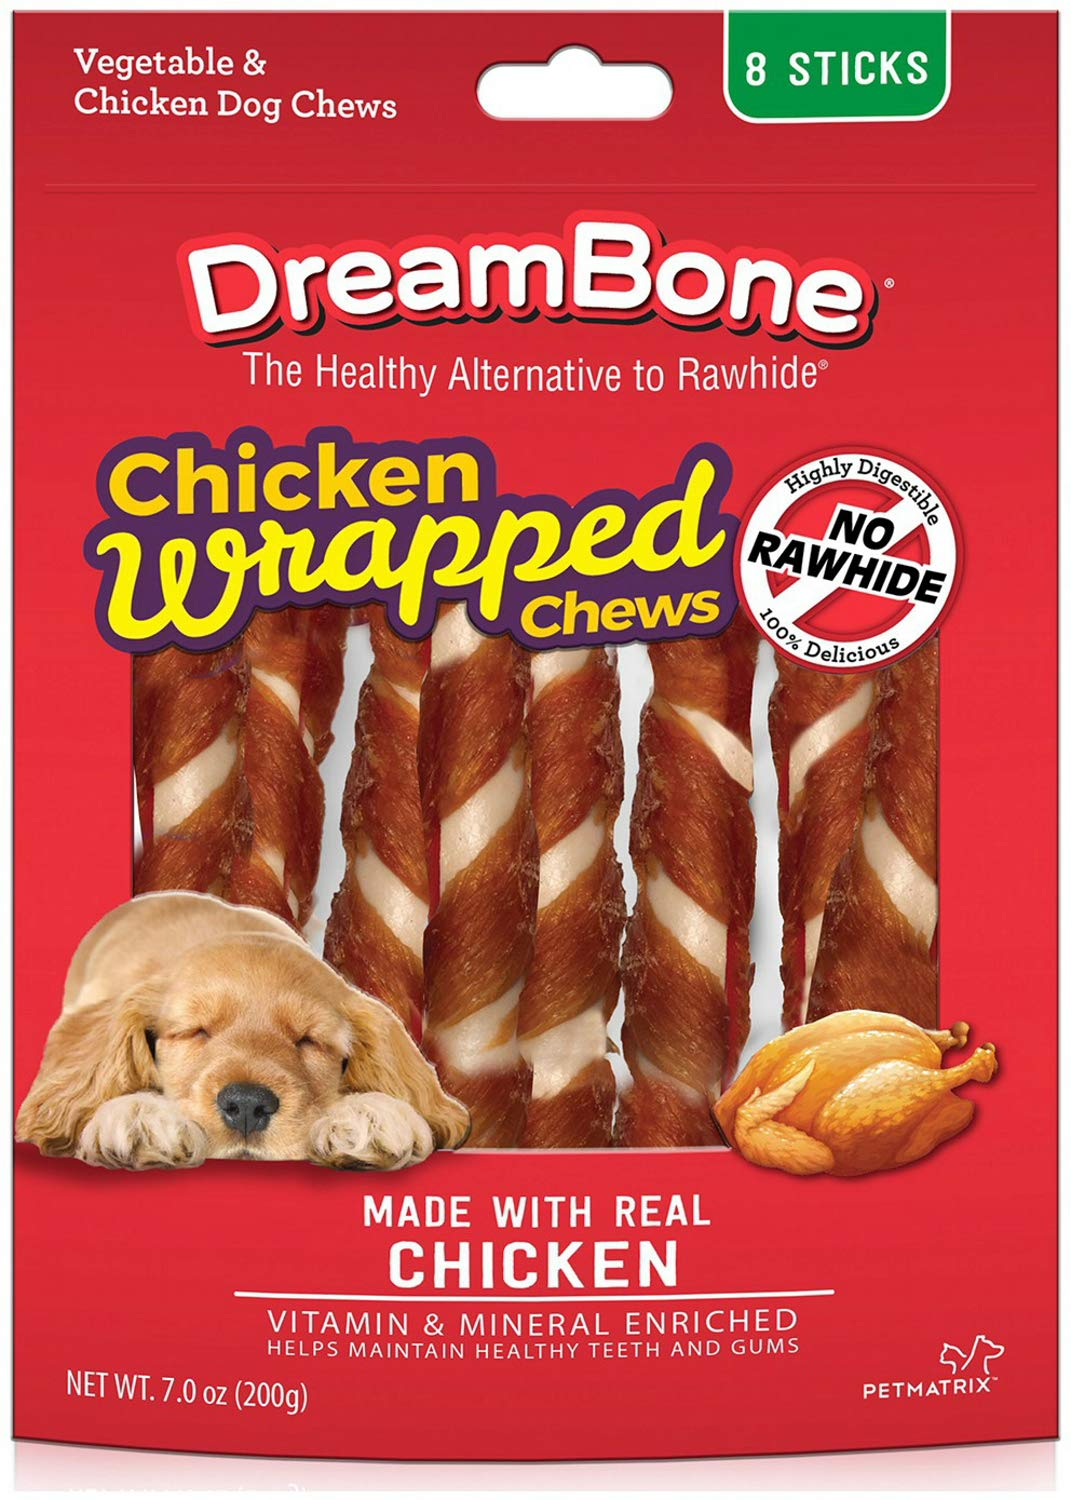 DreamBone Chicken Wrapped Sticks Dog Chews, Large, 8 Count, 24 Pack